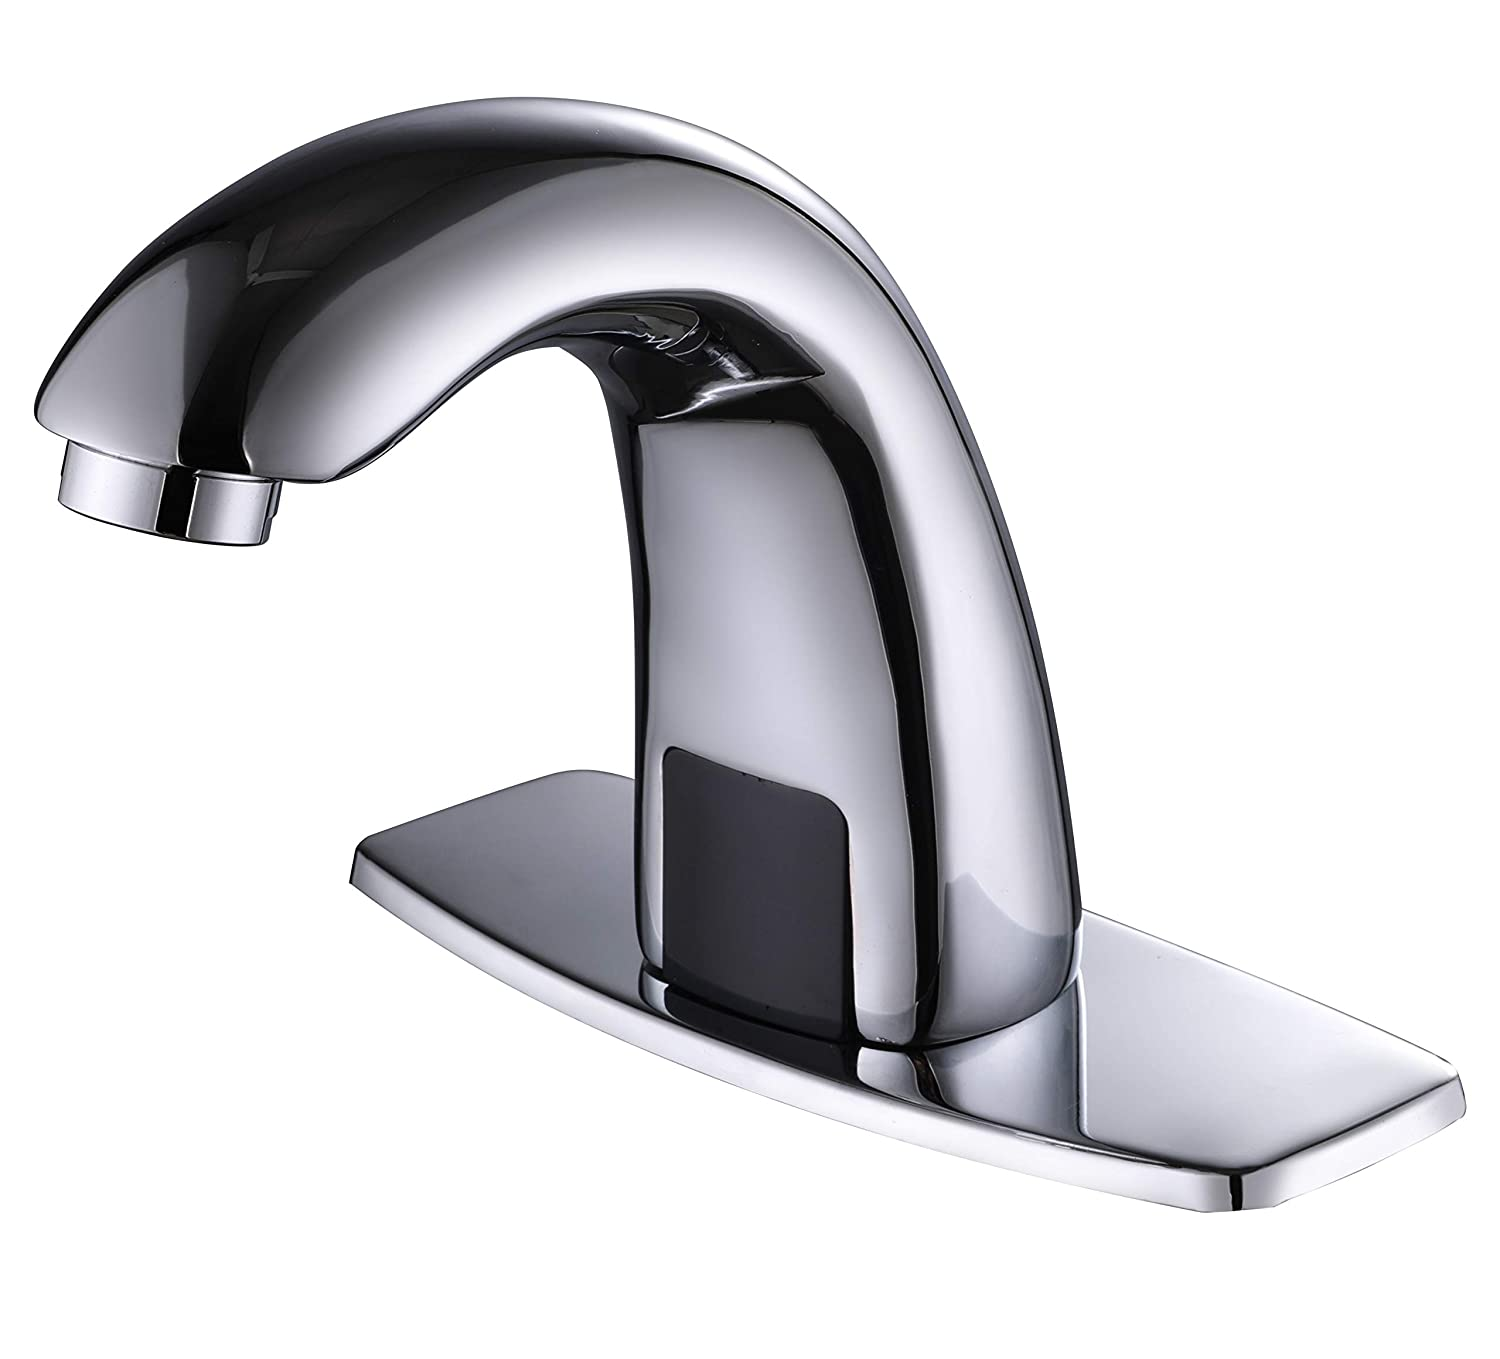 Charmingwater Automatic Sensor Touchless Bathroom Sink Faucet with Hole Cover Plate, Chrome Vanity Faucets, Hands Free Bathroom Water Tap with Control Box and Temperature Mixer